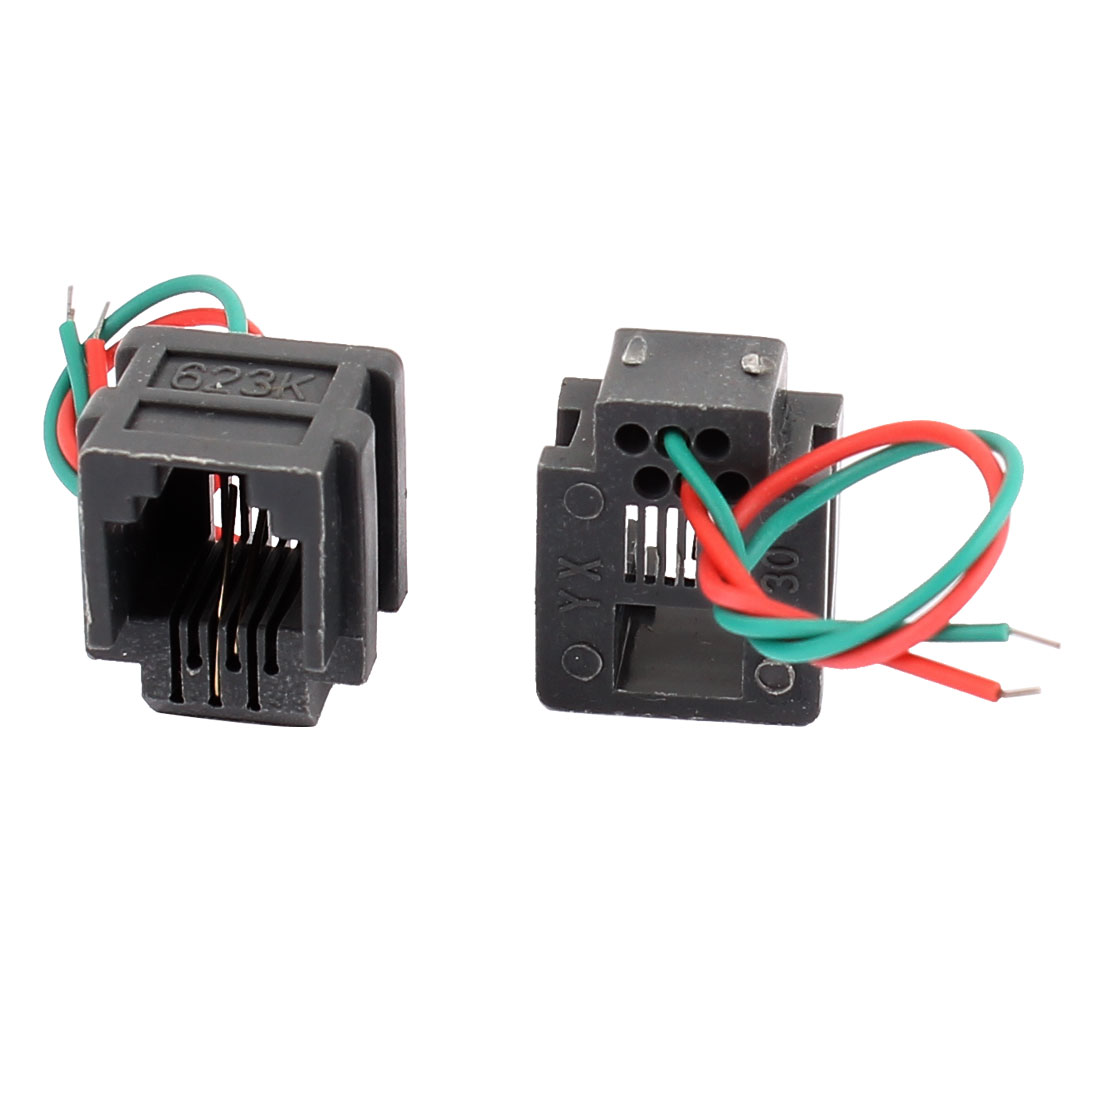 hight resolution of 8 pcs rj11 6p2c 6 position pcb gray network modular female connector w 2 wires